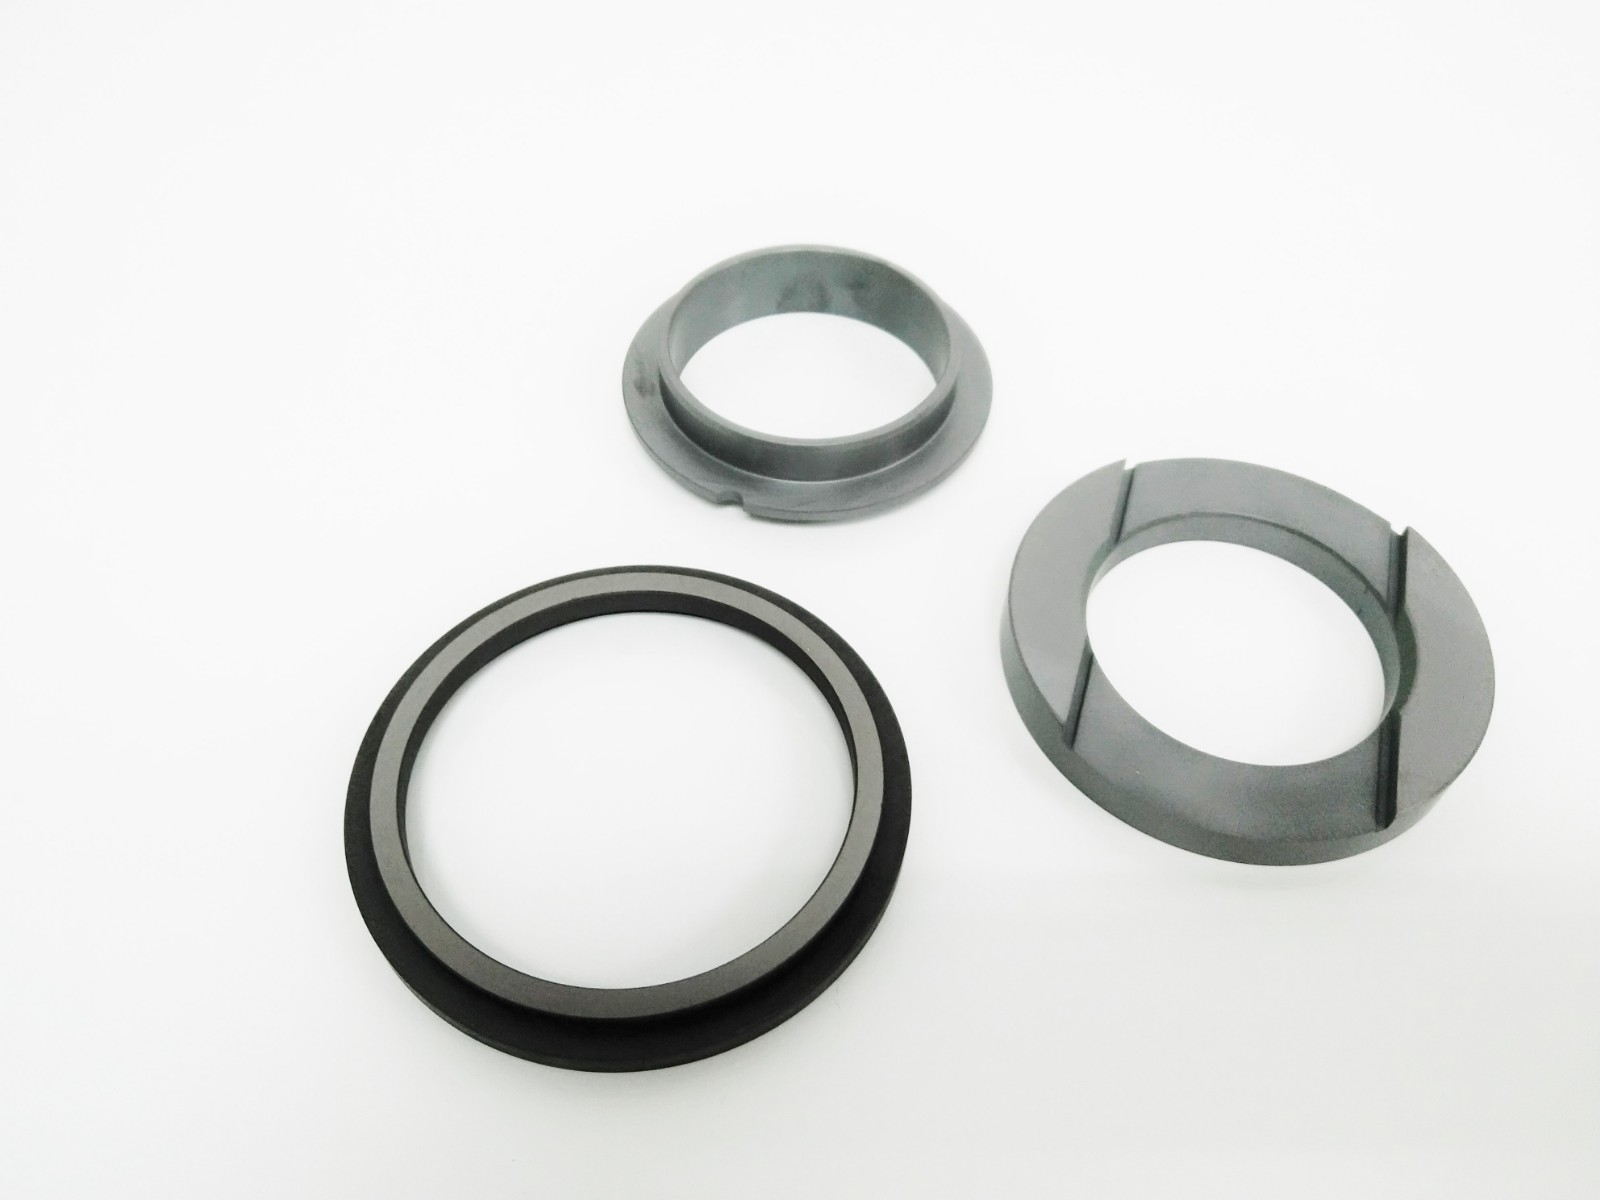 Lepu replacement Mechanical Seal for Fristam Pump OEM for high-pressure applications-1